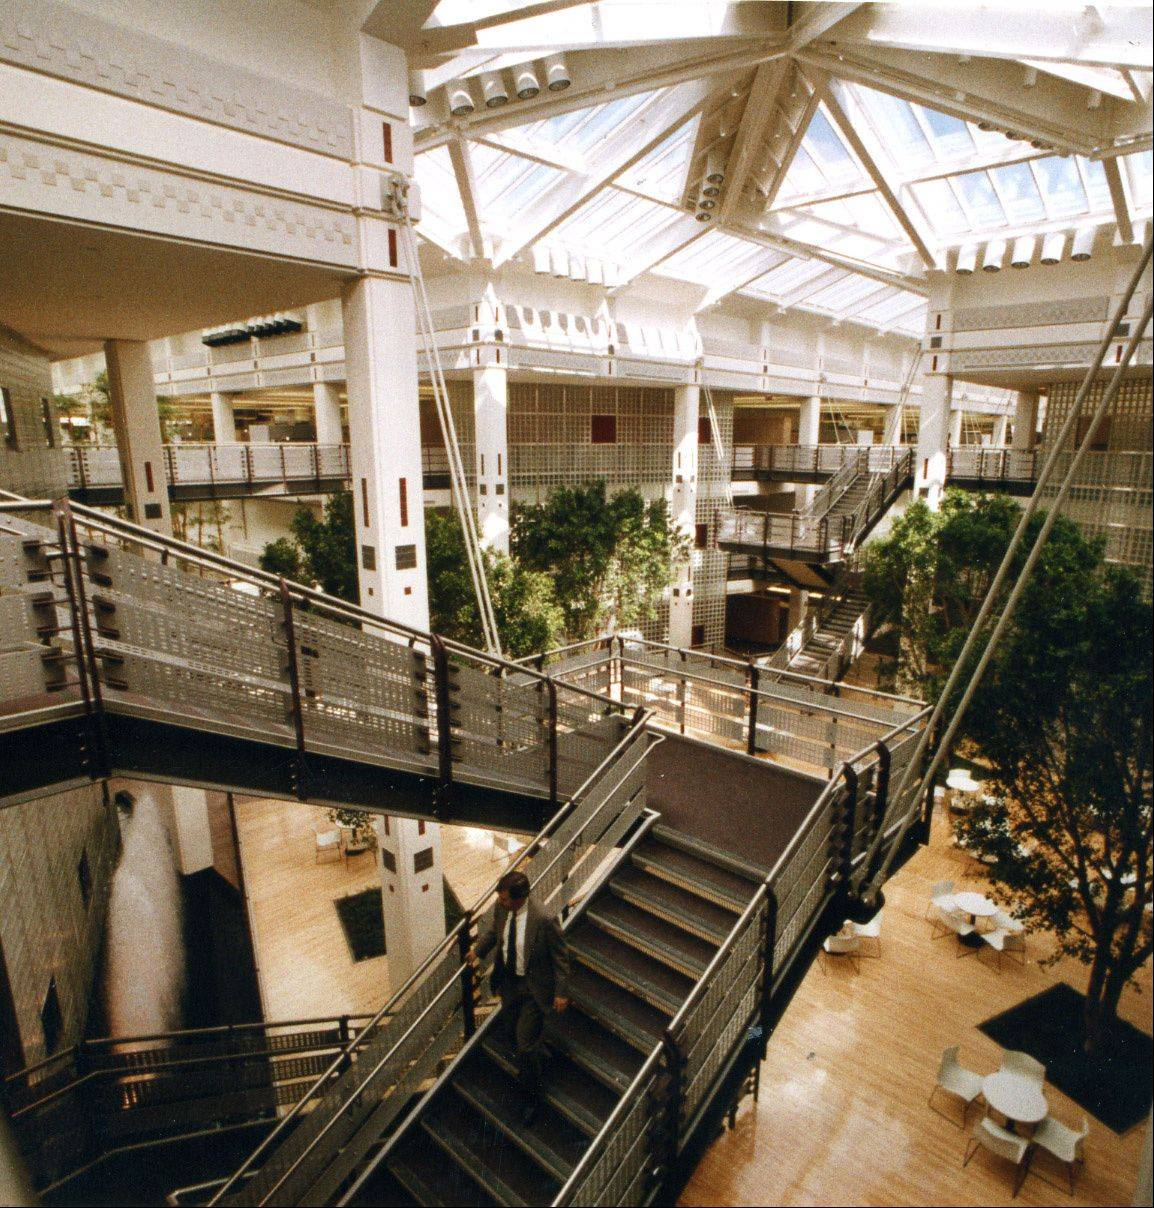 This interior view of the AT&T building in Hoffman Estates shows the atriums and open floor plan that could make it more difficult to subdivide for smaller tenants.